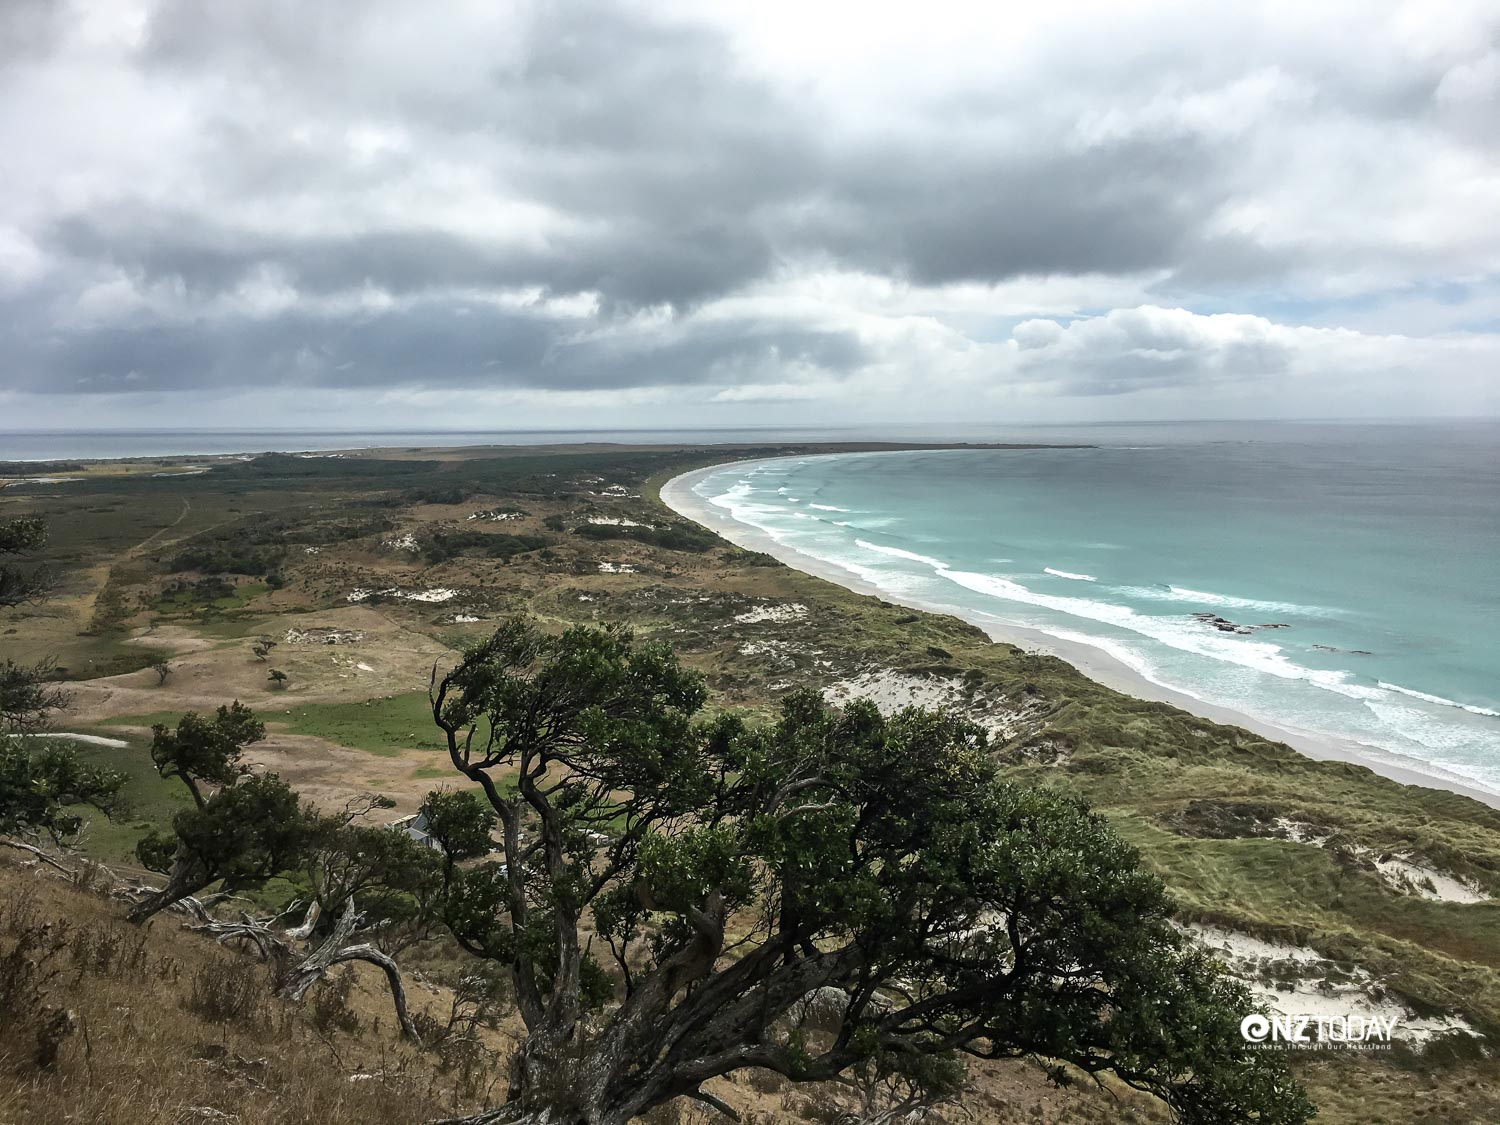 View of Tupuangi, situated along the point, looking from Maunganui where survivors of the village ran to safety – photo K-L Thomas GNS Science